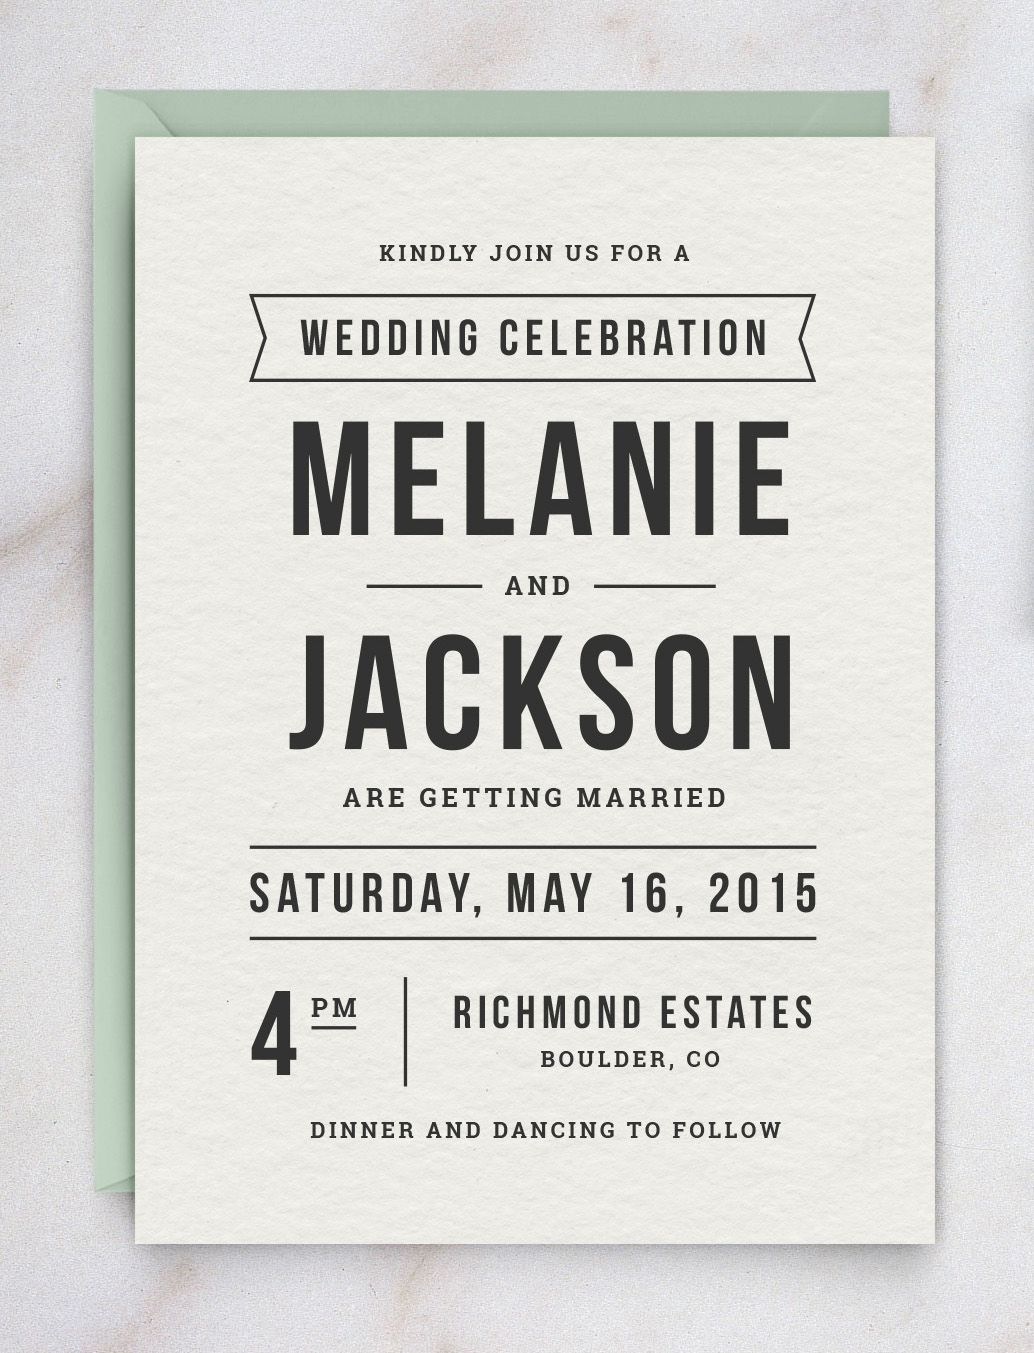 wedding invitation template suite wedding elegant invitations diy wedding invitations get this elegant invitation template matching rsvp and info cards for